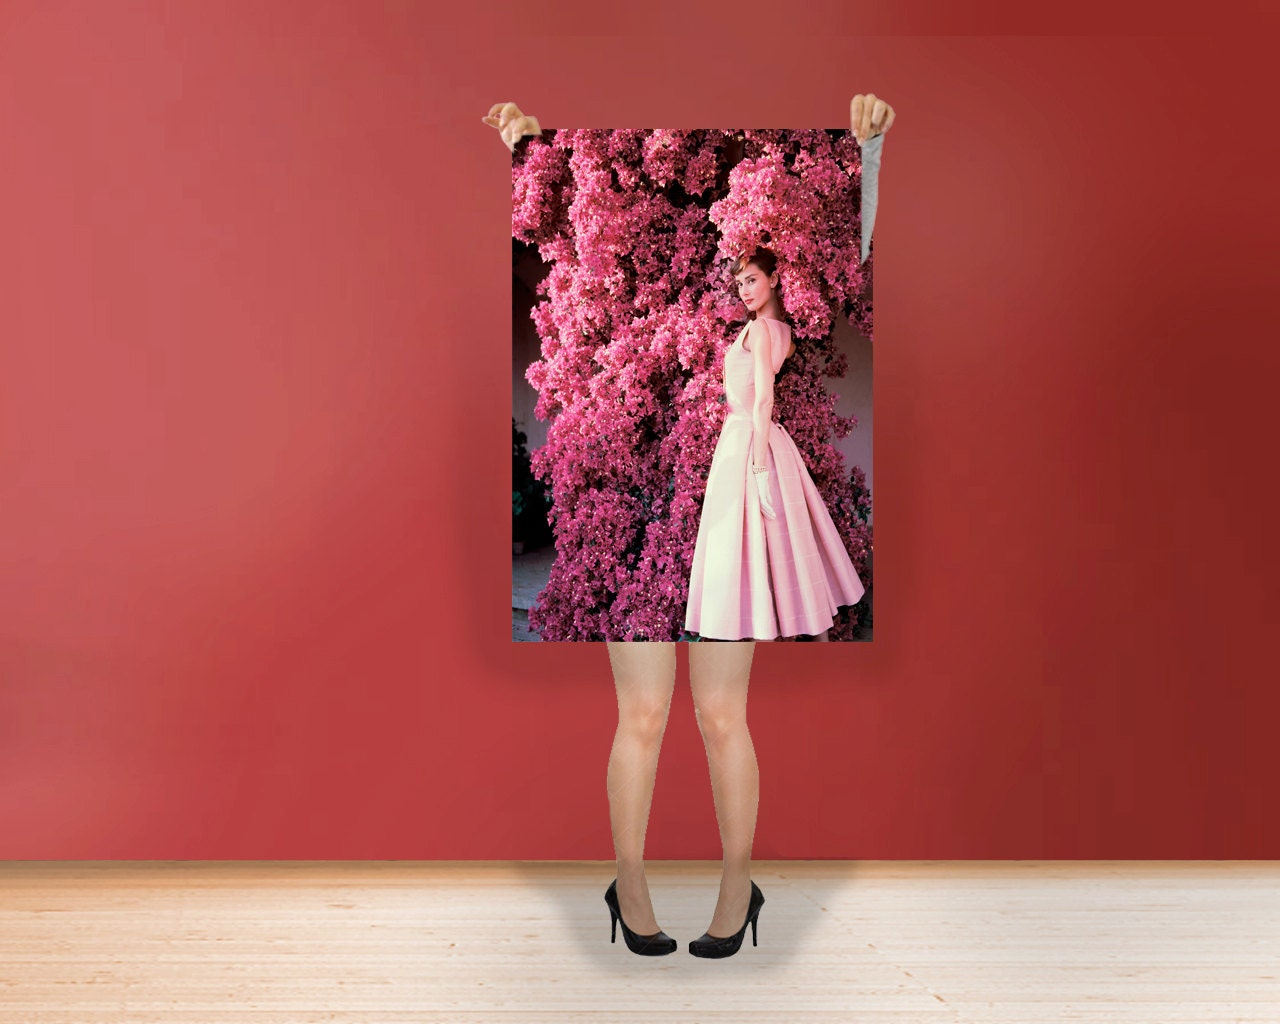 Audrey Hepburn Pink Flowers Classic Print Poster Rolled Etsy